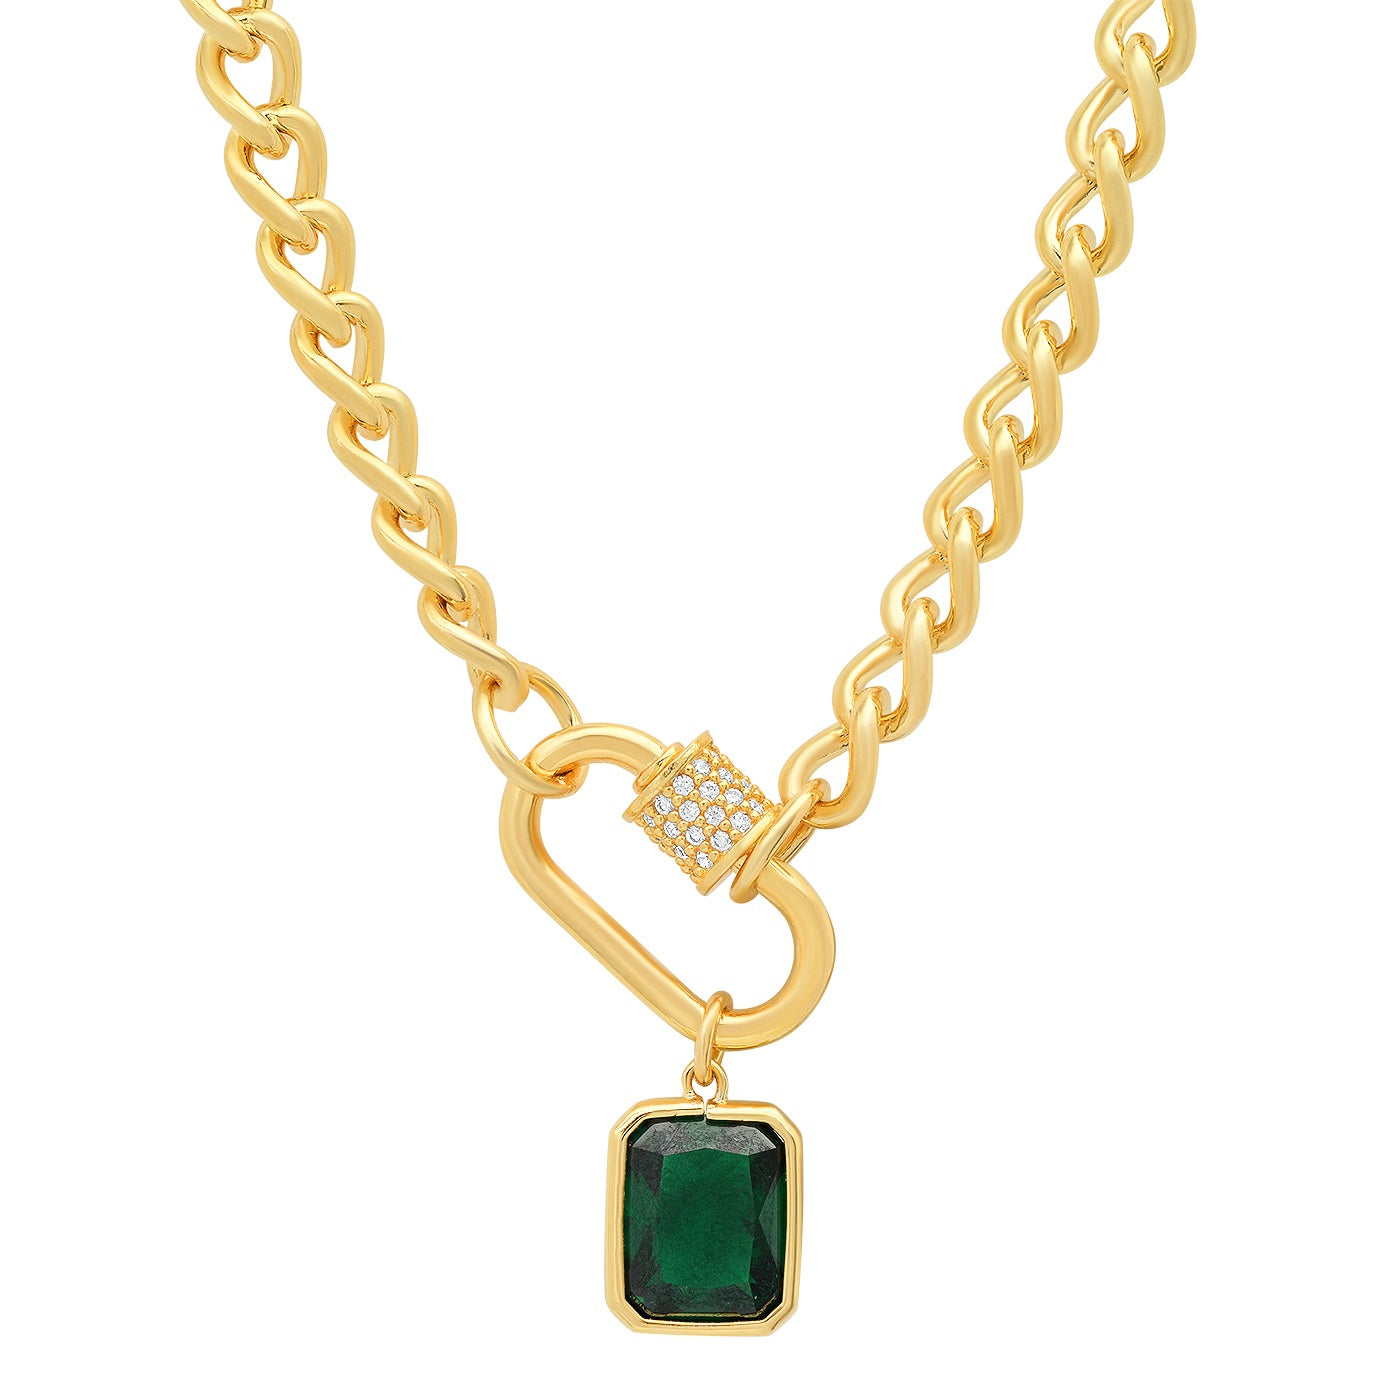 Gold Link Necklace with Pave CZ Encrusted Lock and Emerald Charm